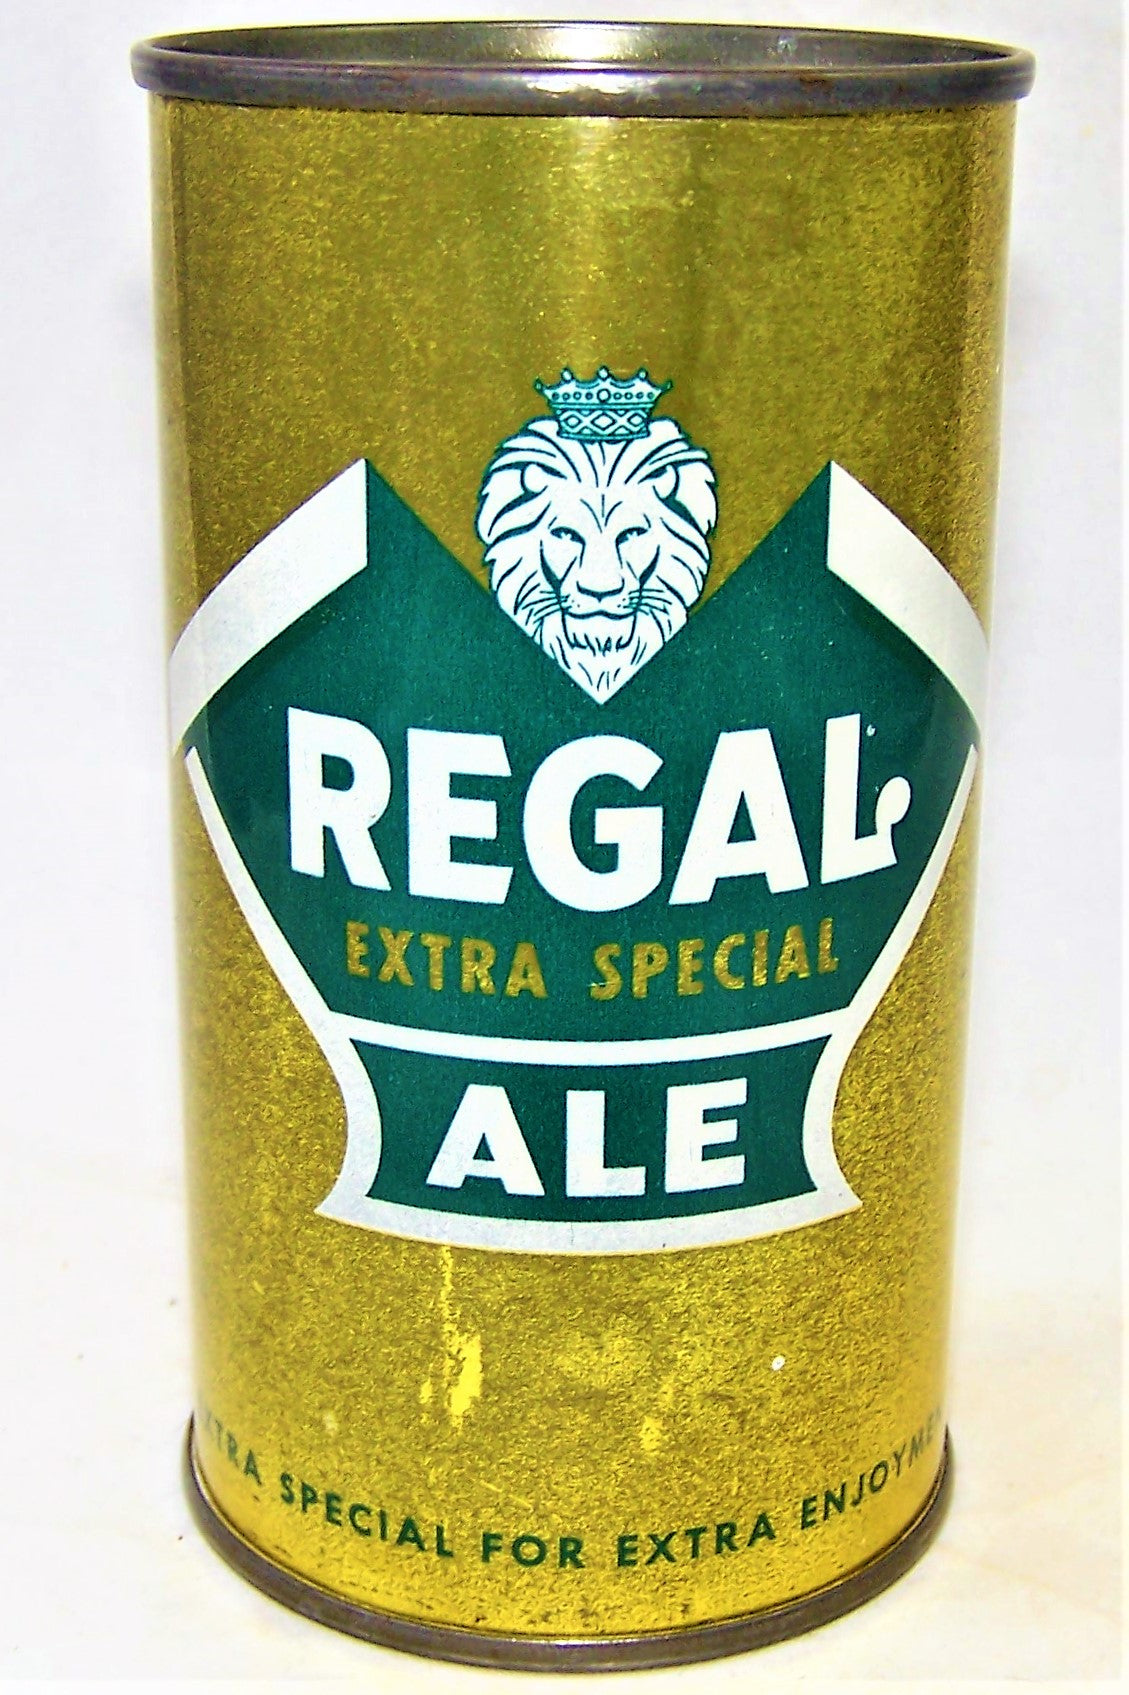 Regal Extra Pale Ale, USBC 121-22, Grade 1-Sold 6/7/19